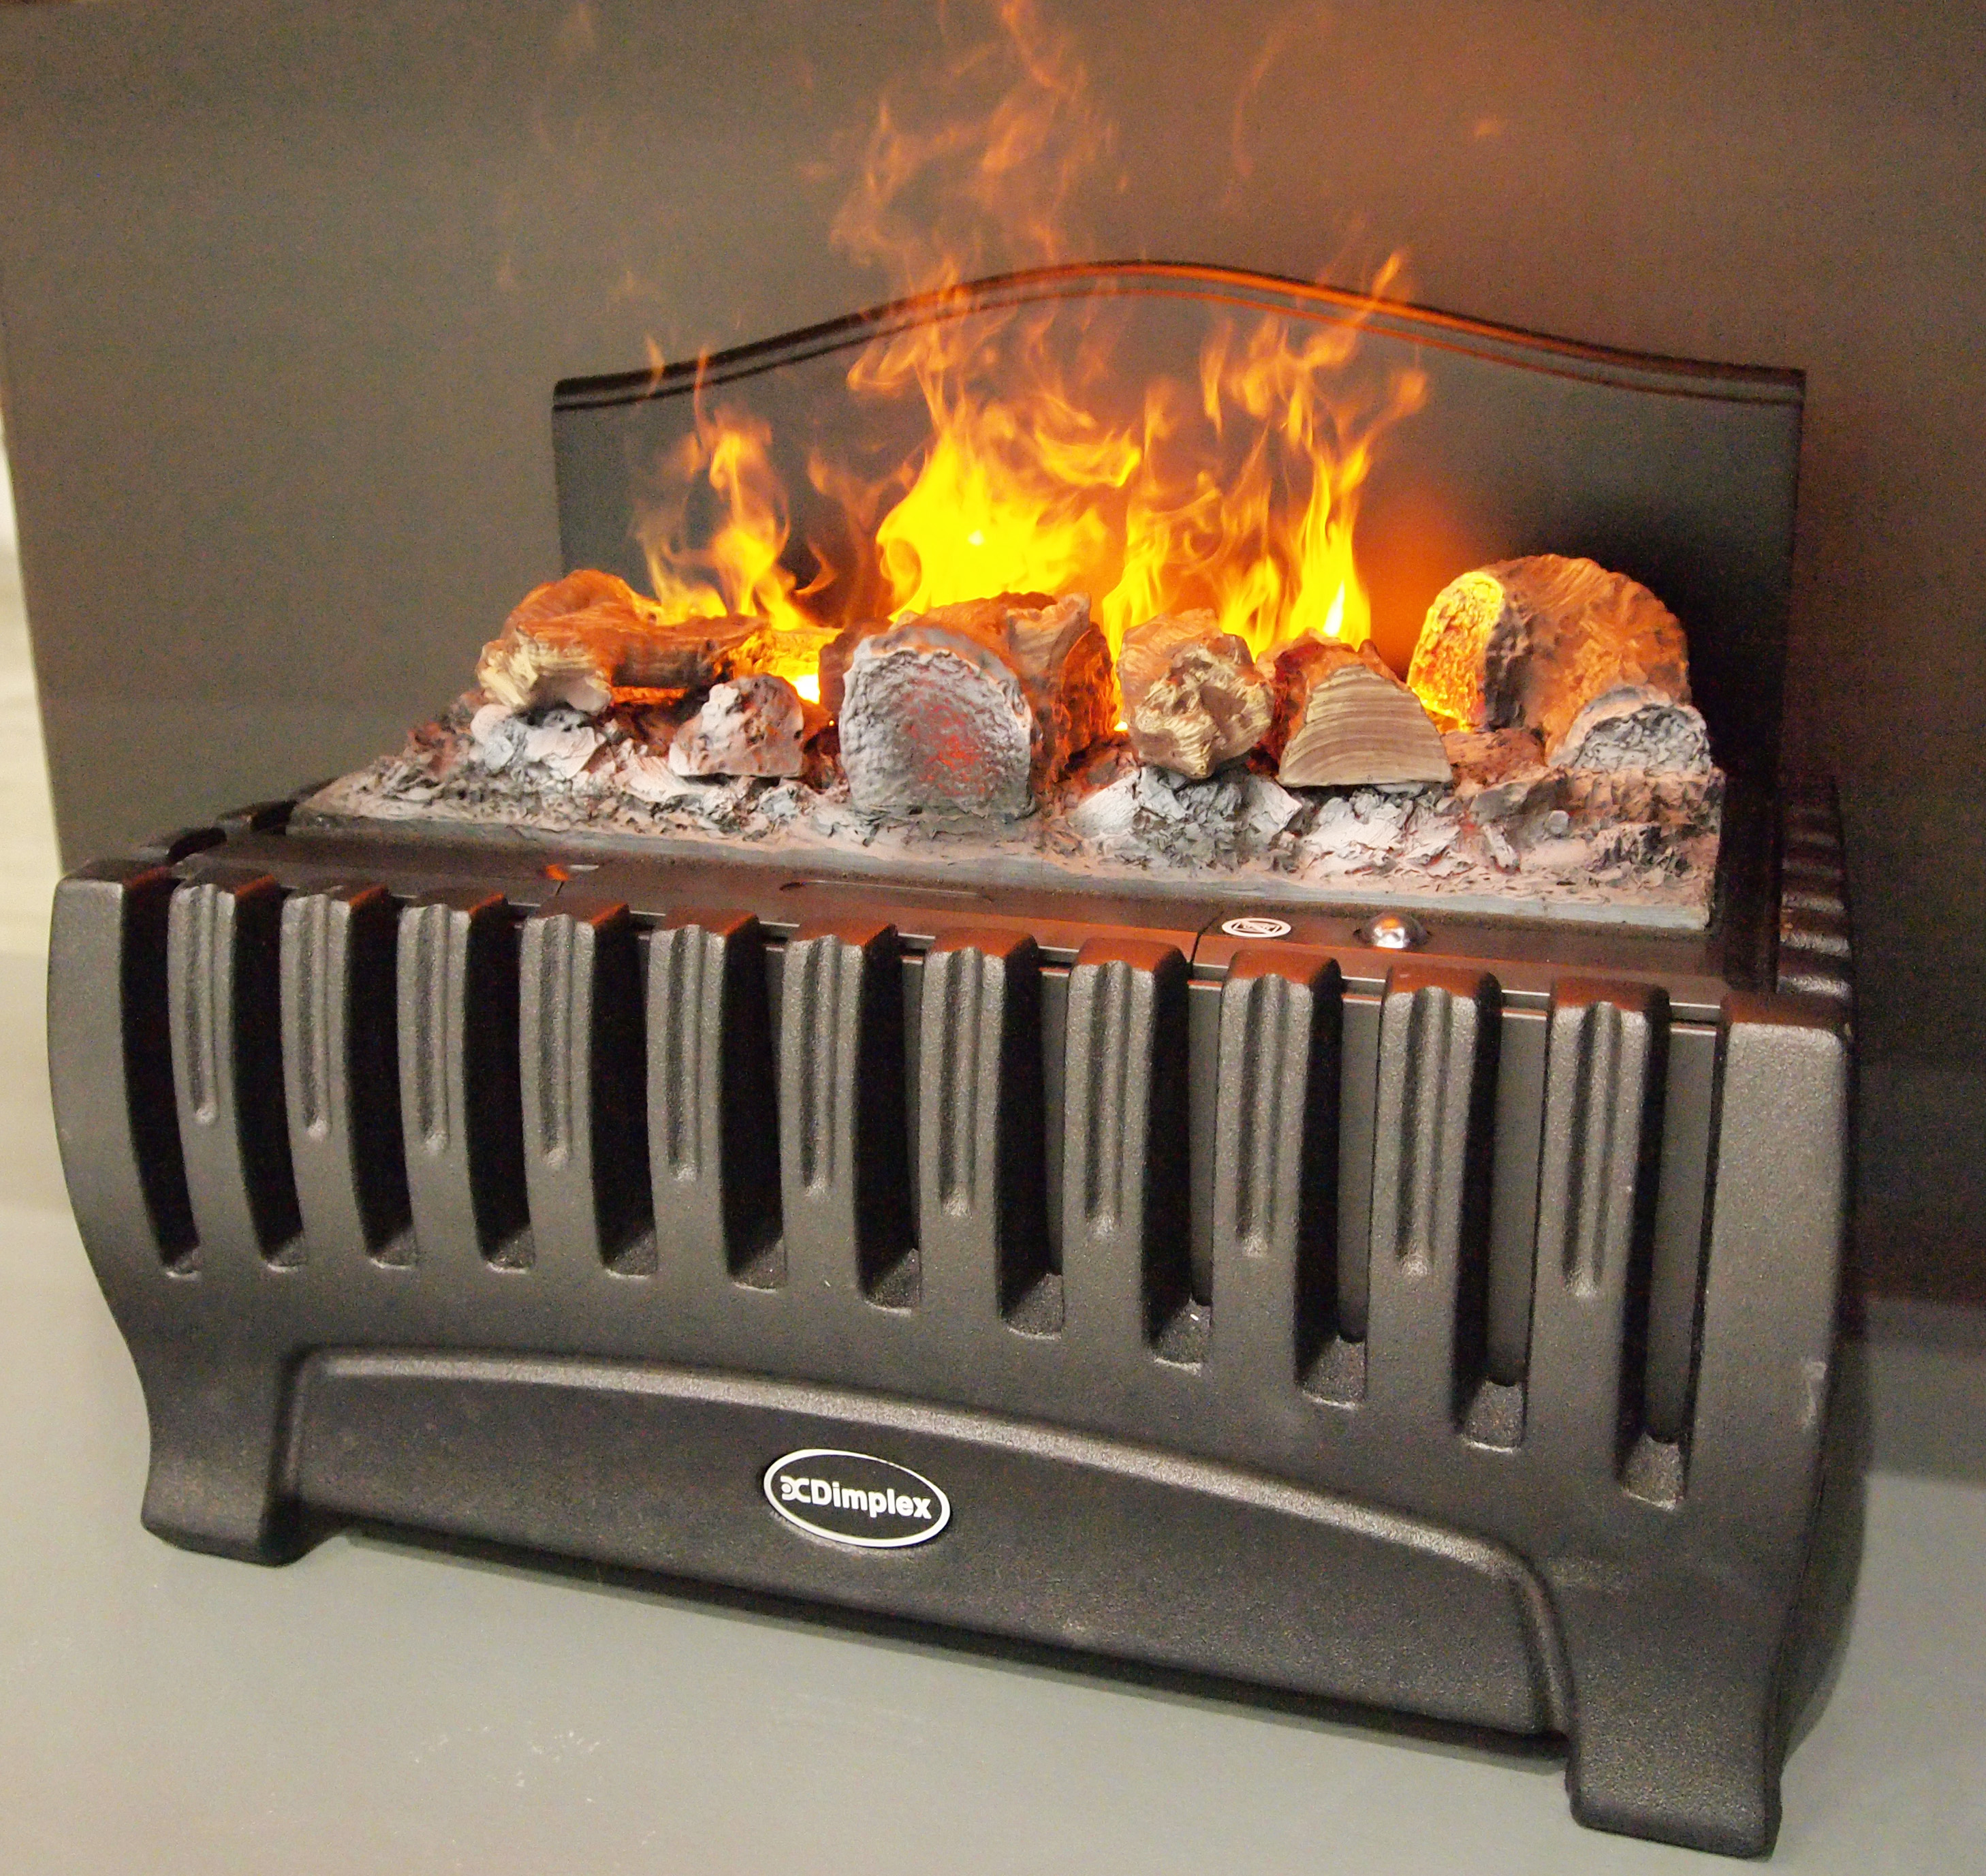 file dimplex electric fireplace jpg wikimedia commons